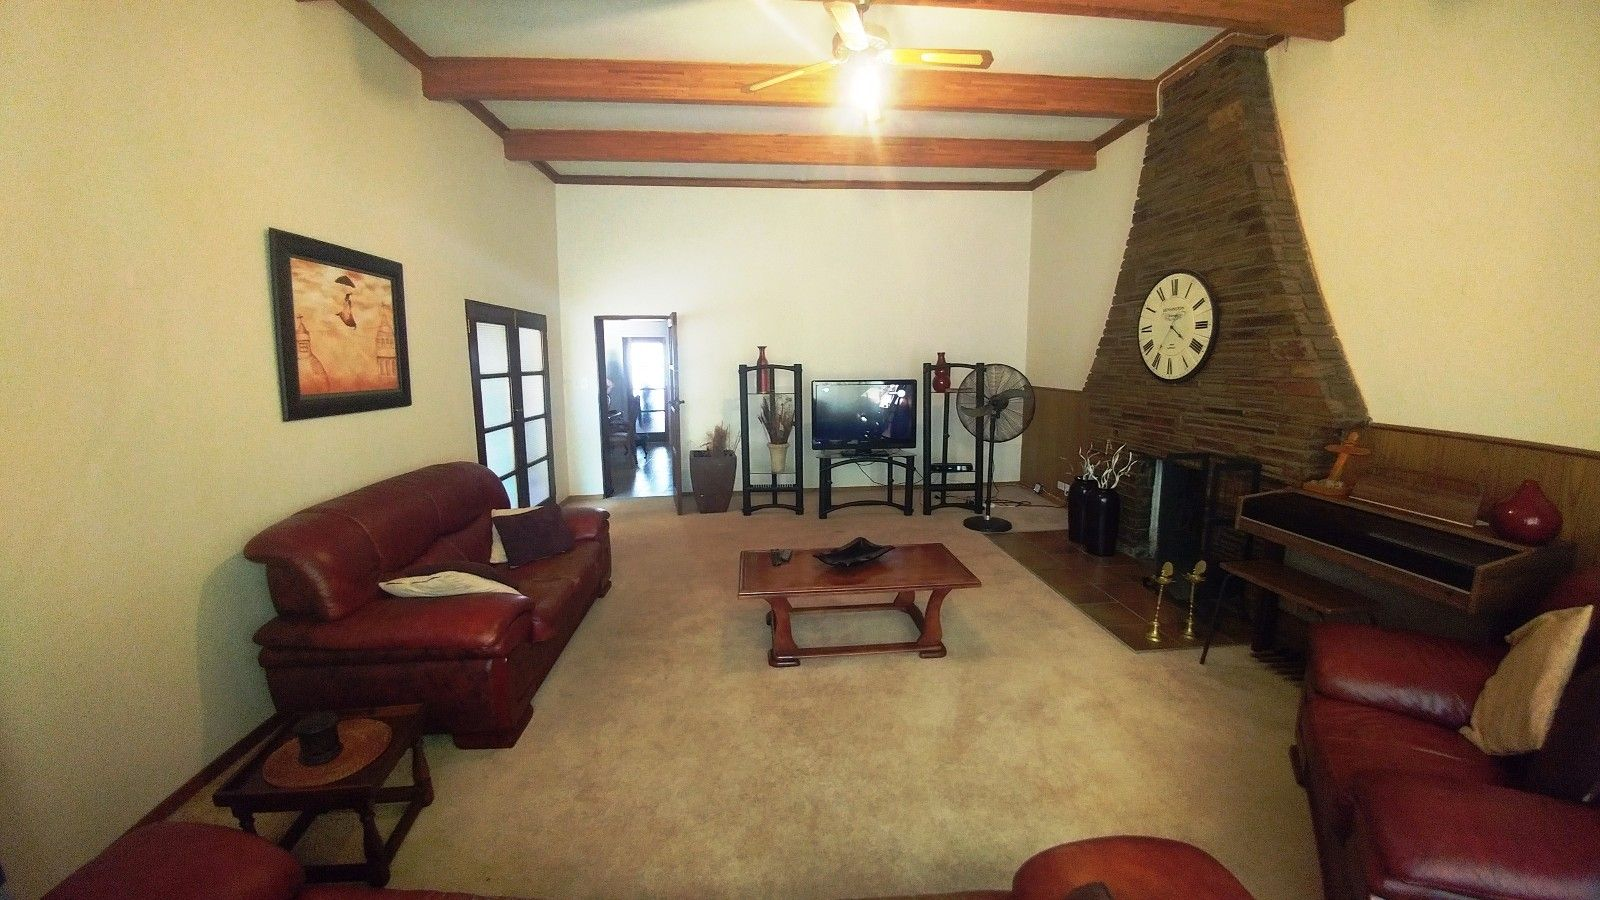 Potchefstroom Central for sale property. Ref No: 13460775. Picture no 4